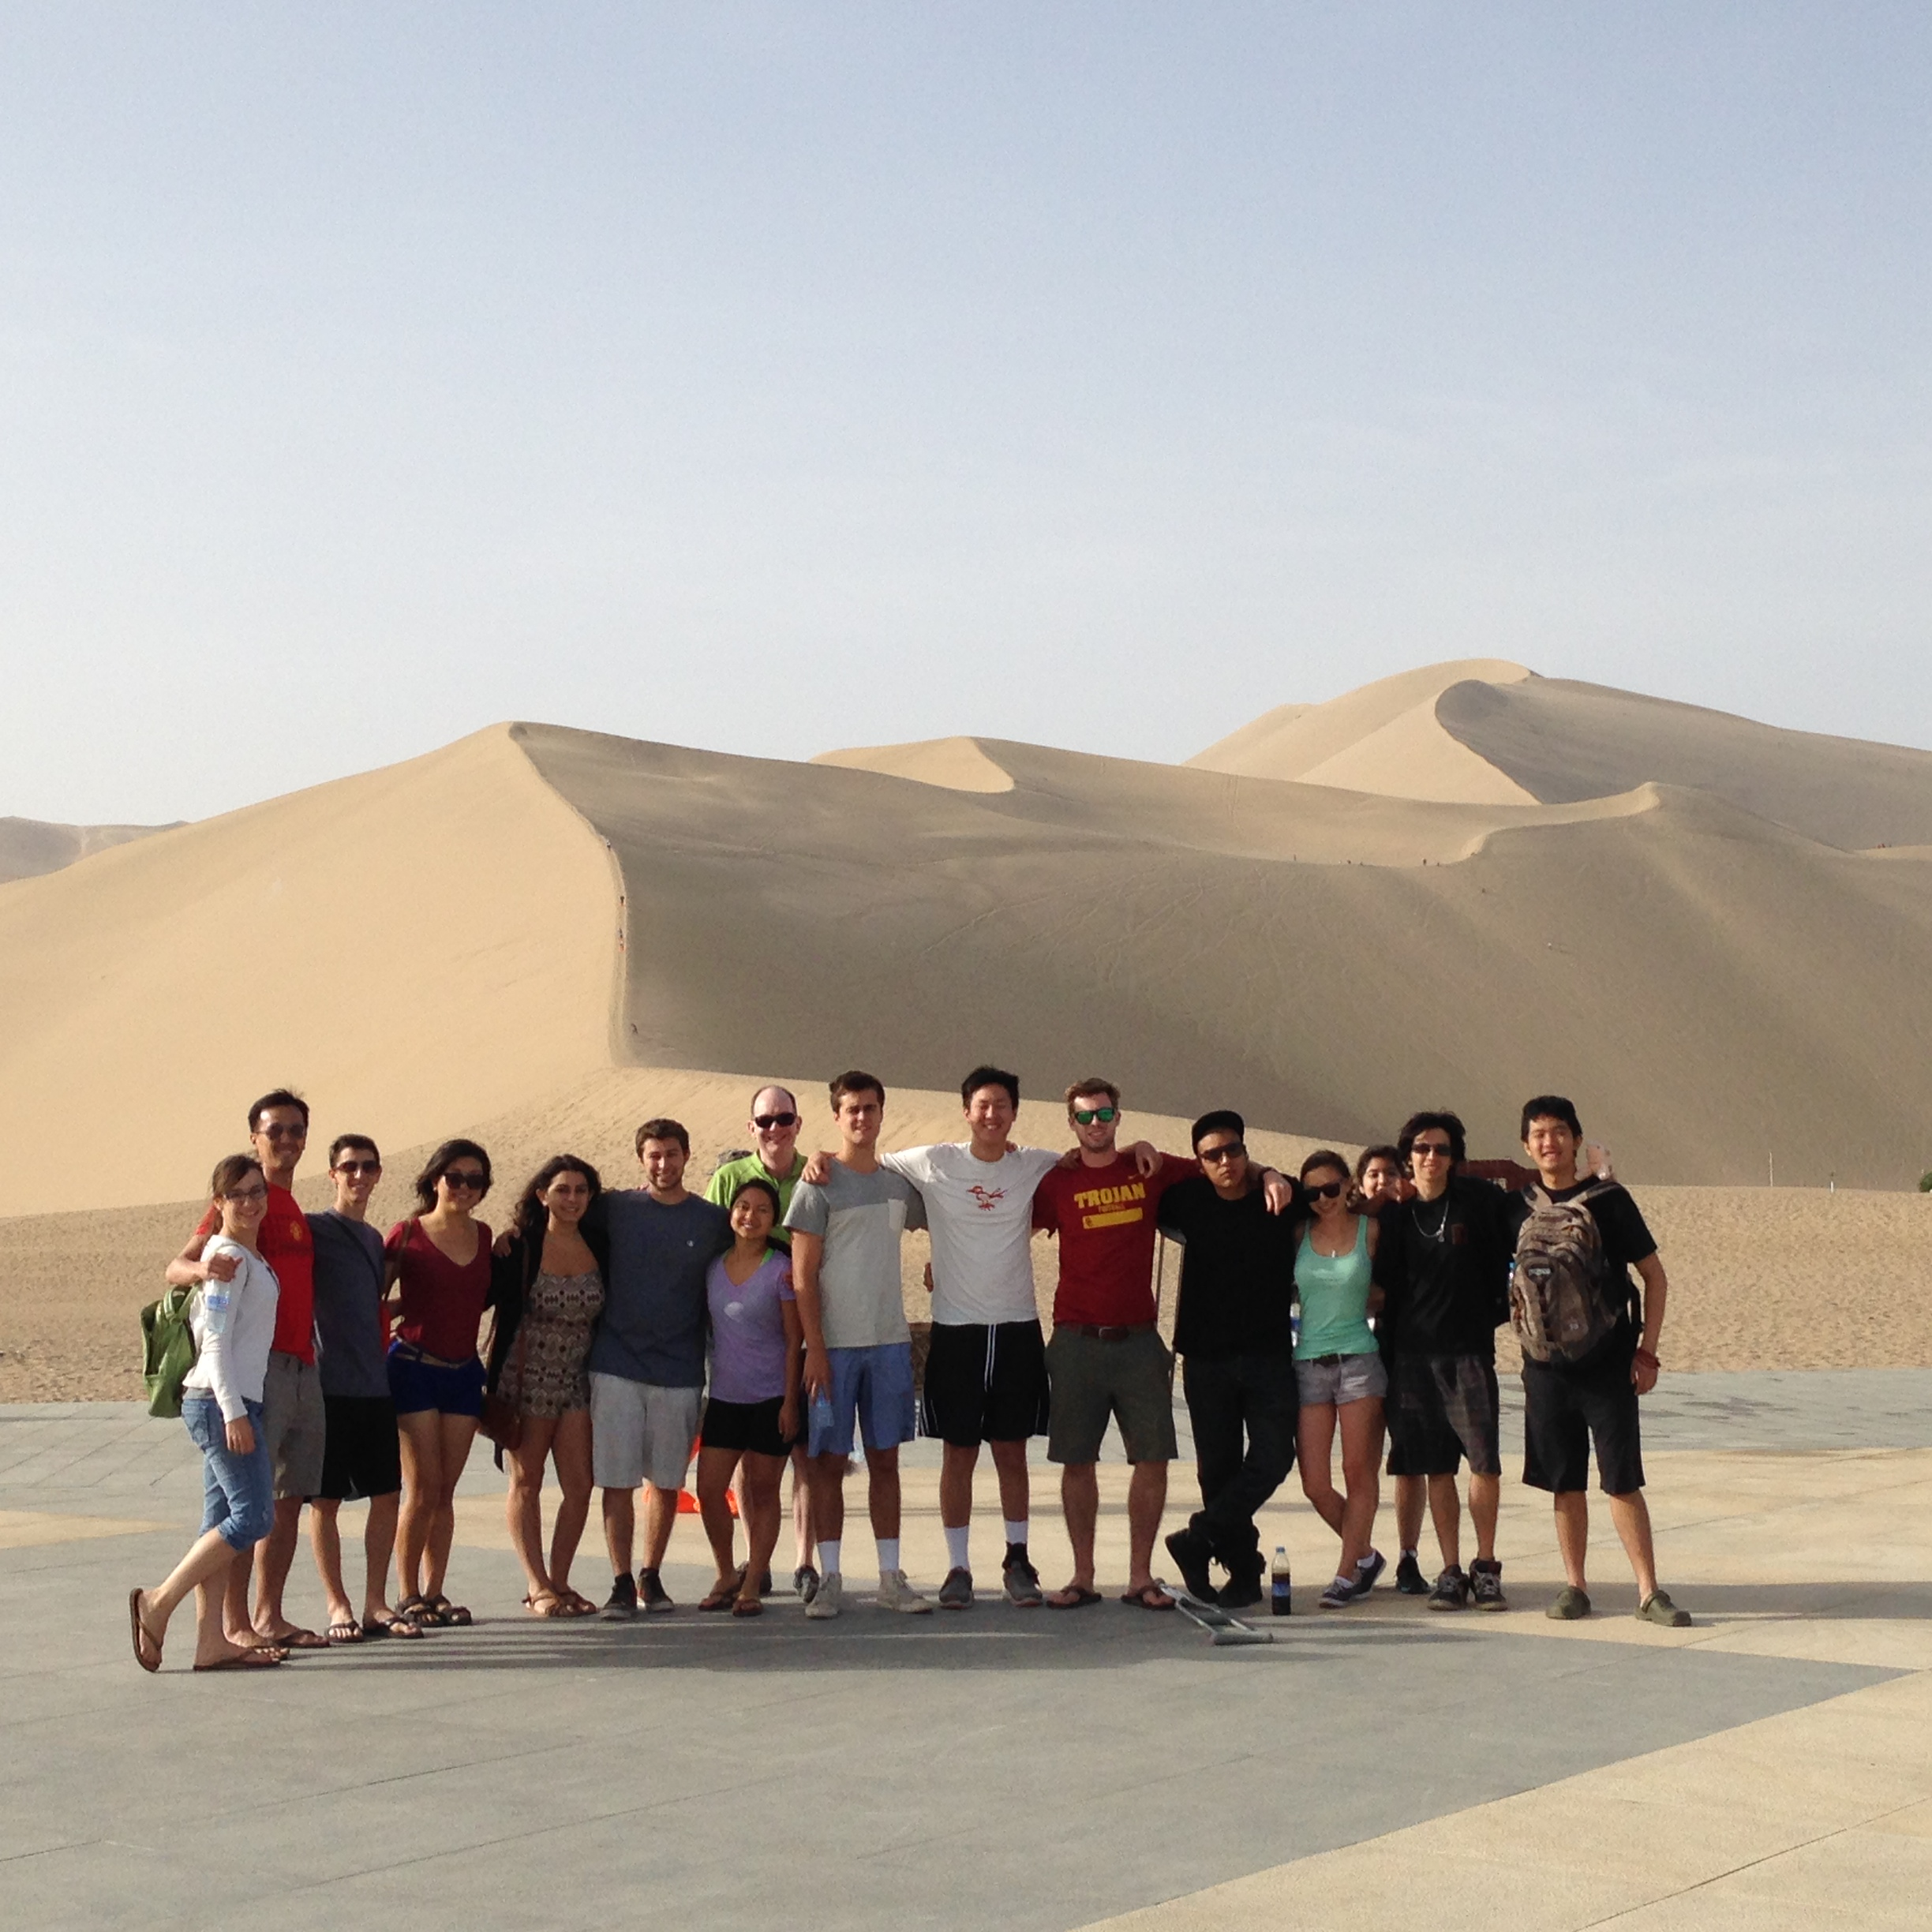 In front of the Dunes of Dunhuang, June 10